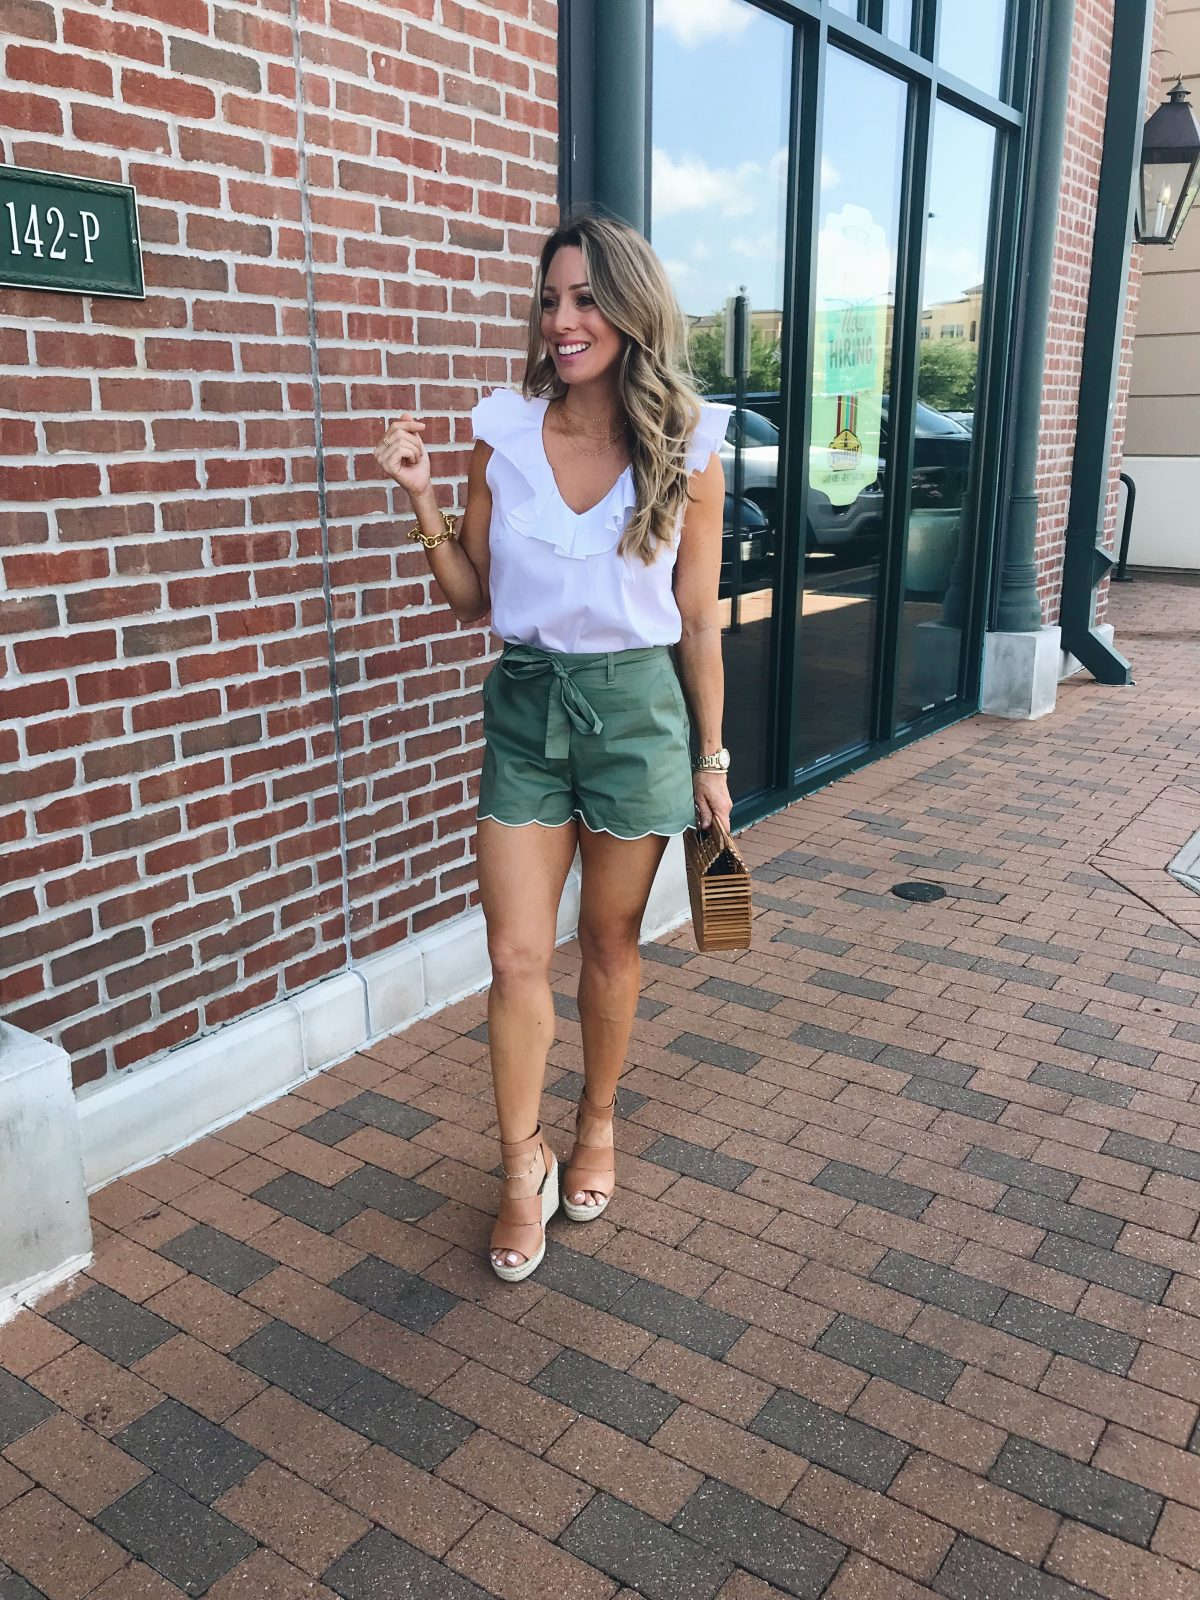 984fec5475851 Green scallop shorts and white ruffled tank w wedges Pin this image on  Pinterest